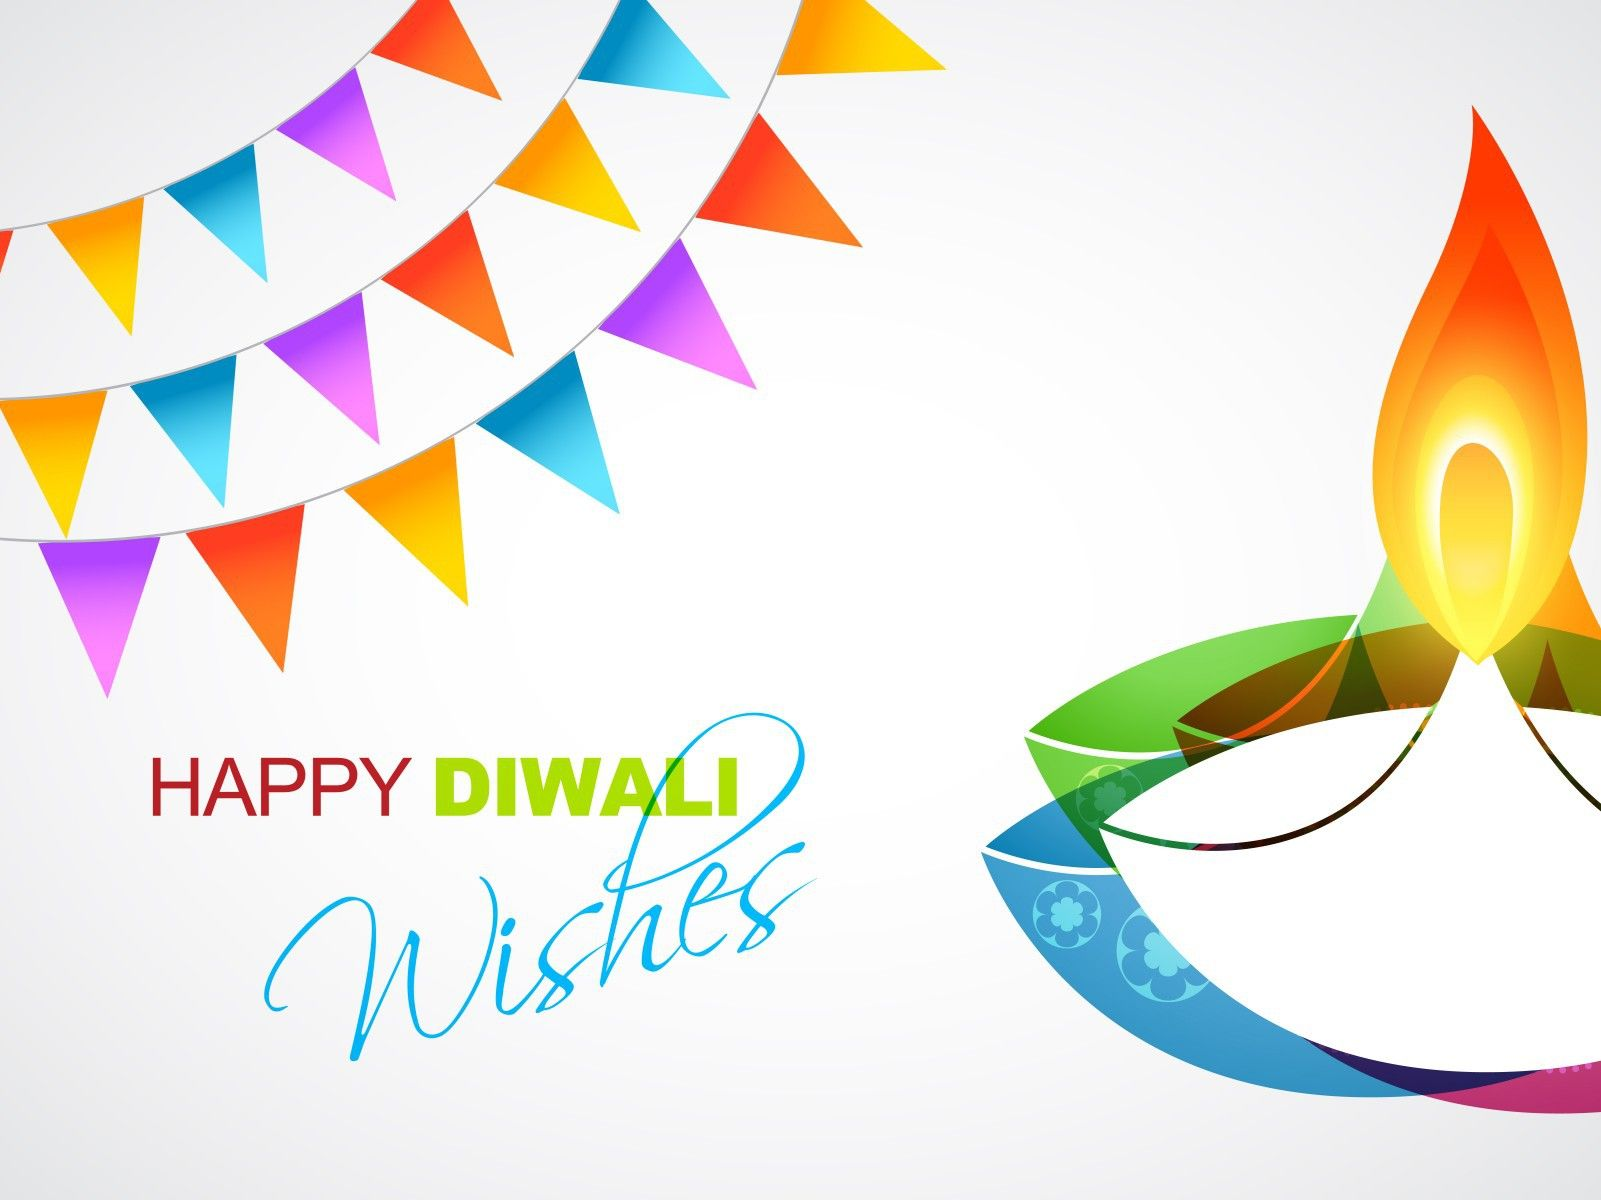 Happy diwali wallpaper greetings card happy diwali hd wallpapers happy diwali wallpaper greetings card m4hsunfo Images